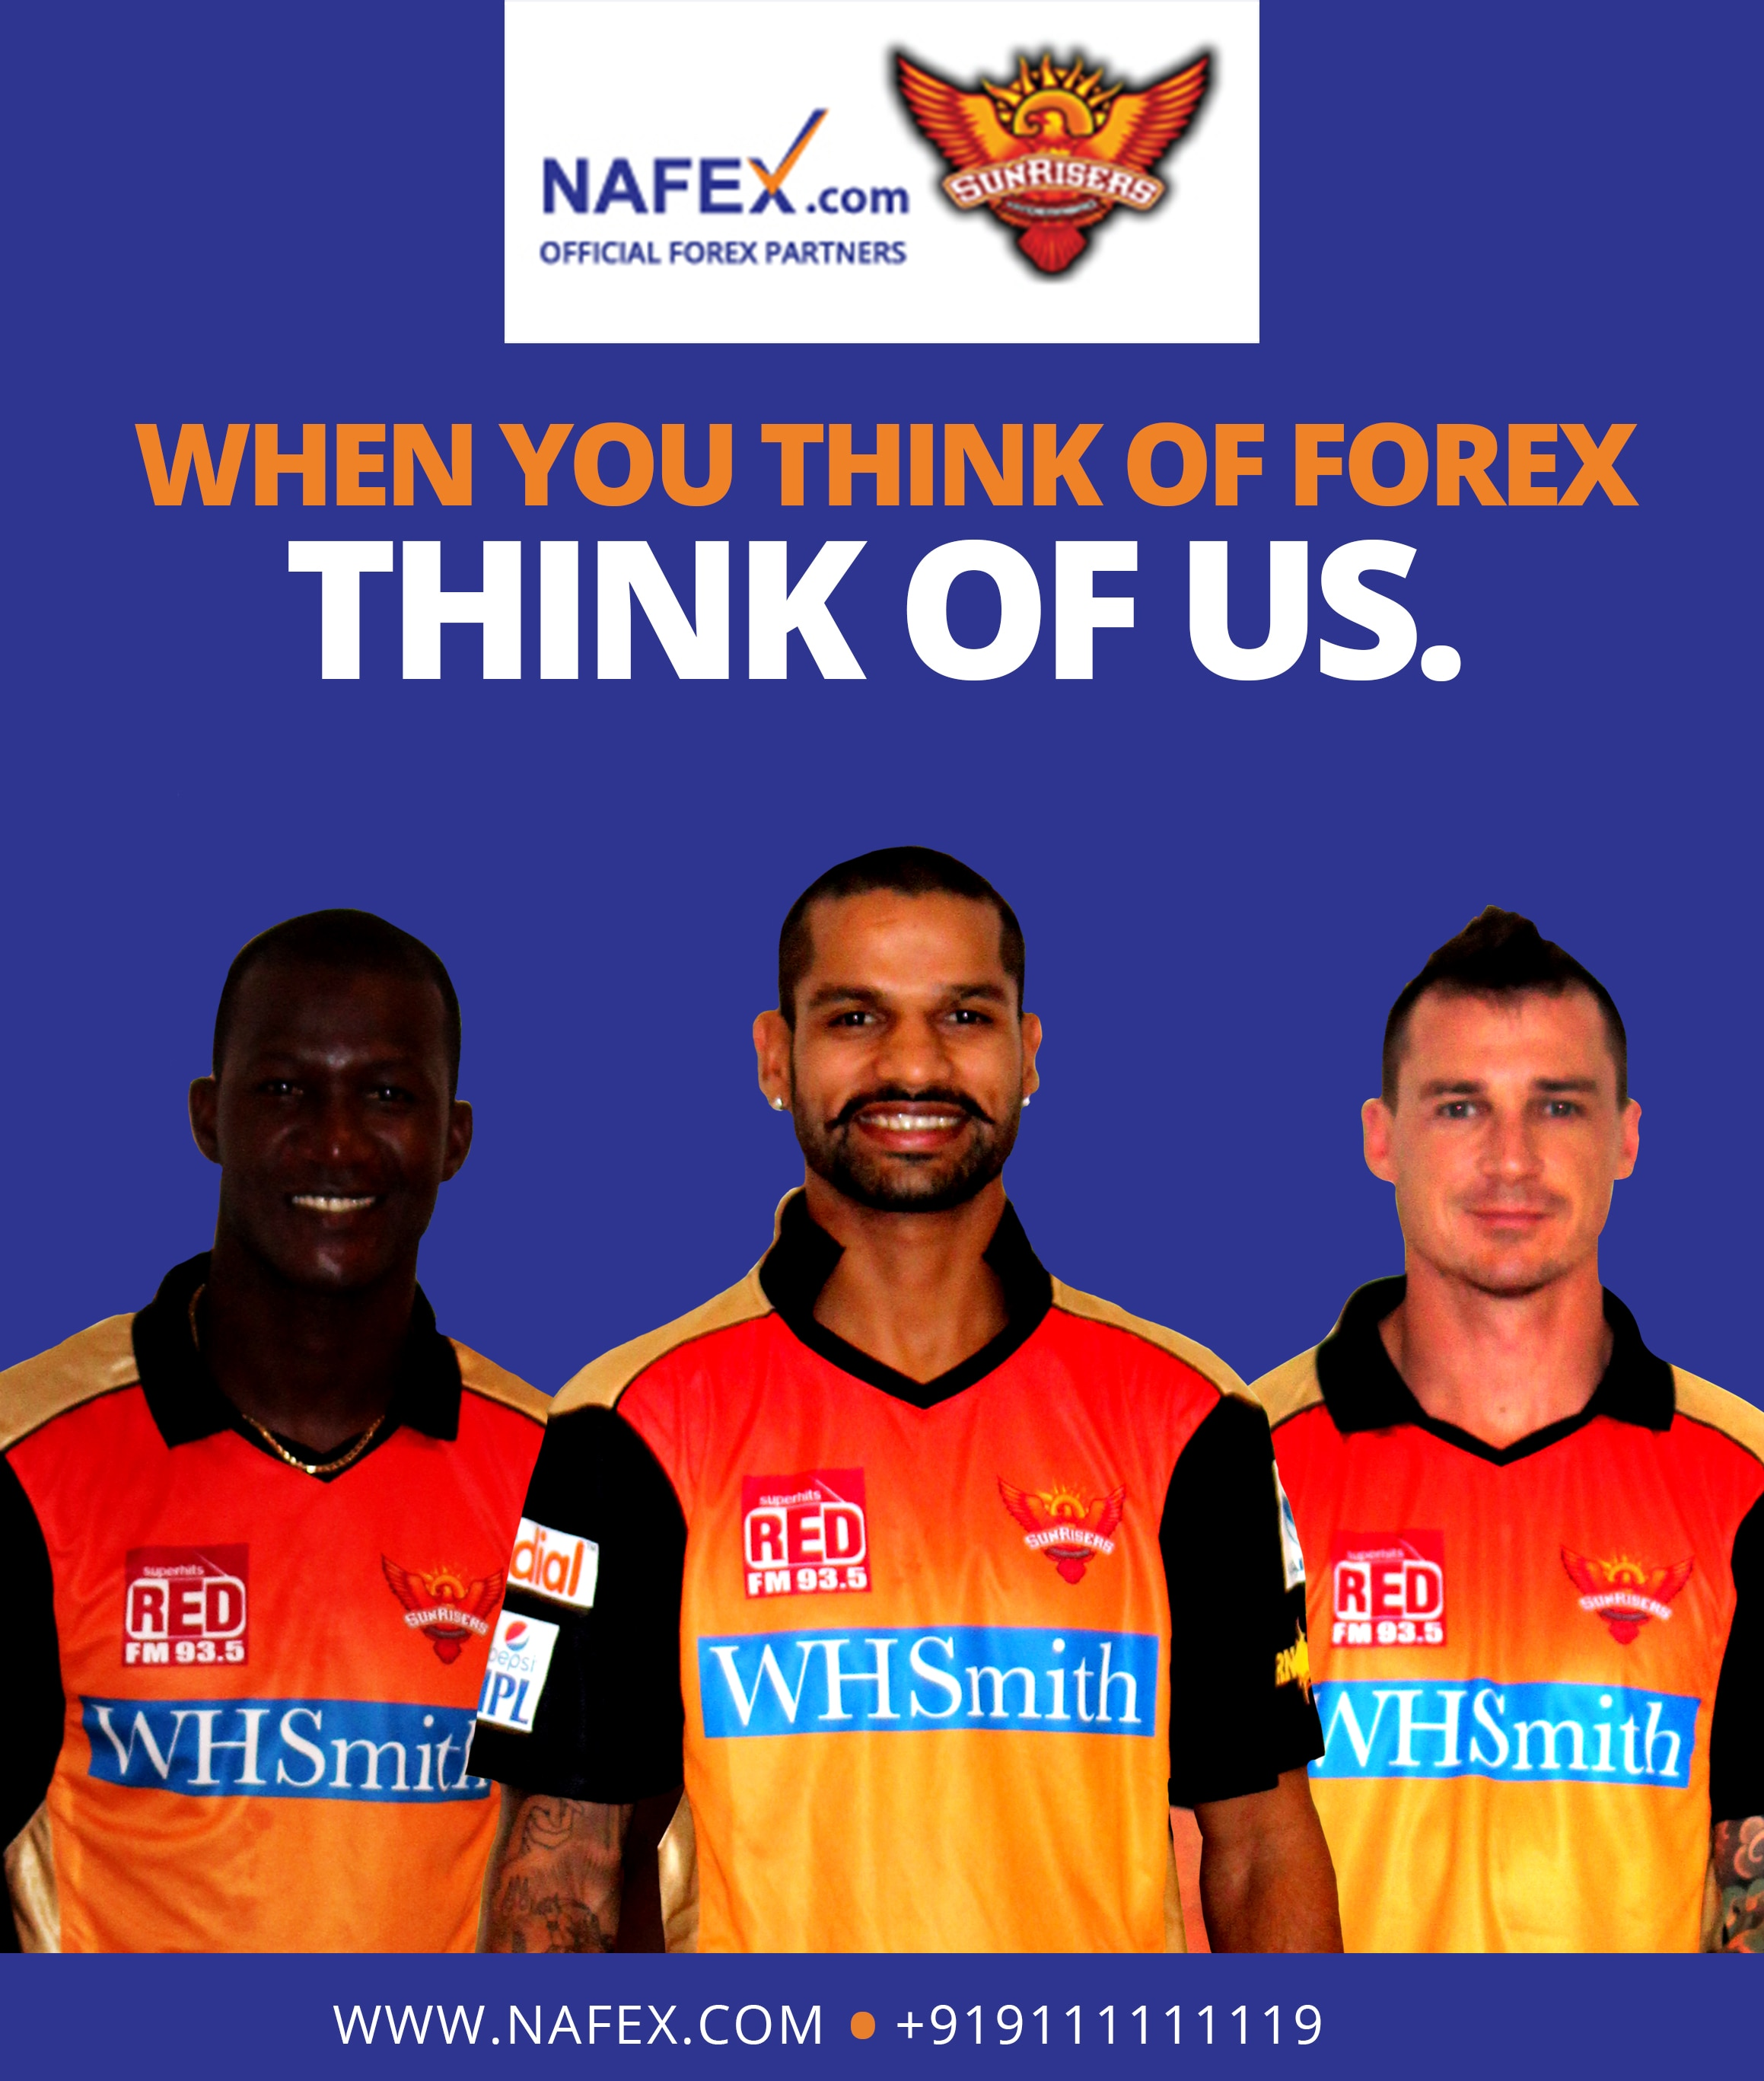 Nafex - JP Nagar Foreign Currency Exchange Dealers Agents JP Nagar, Online Travellers Cheque & Forex Prepaid Card